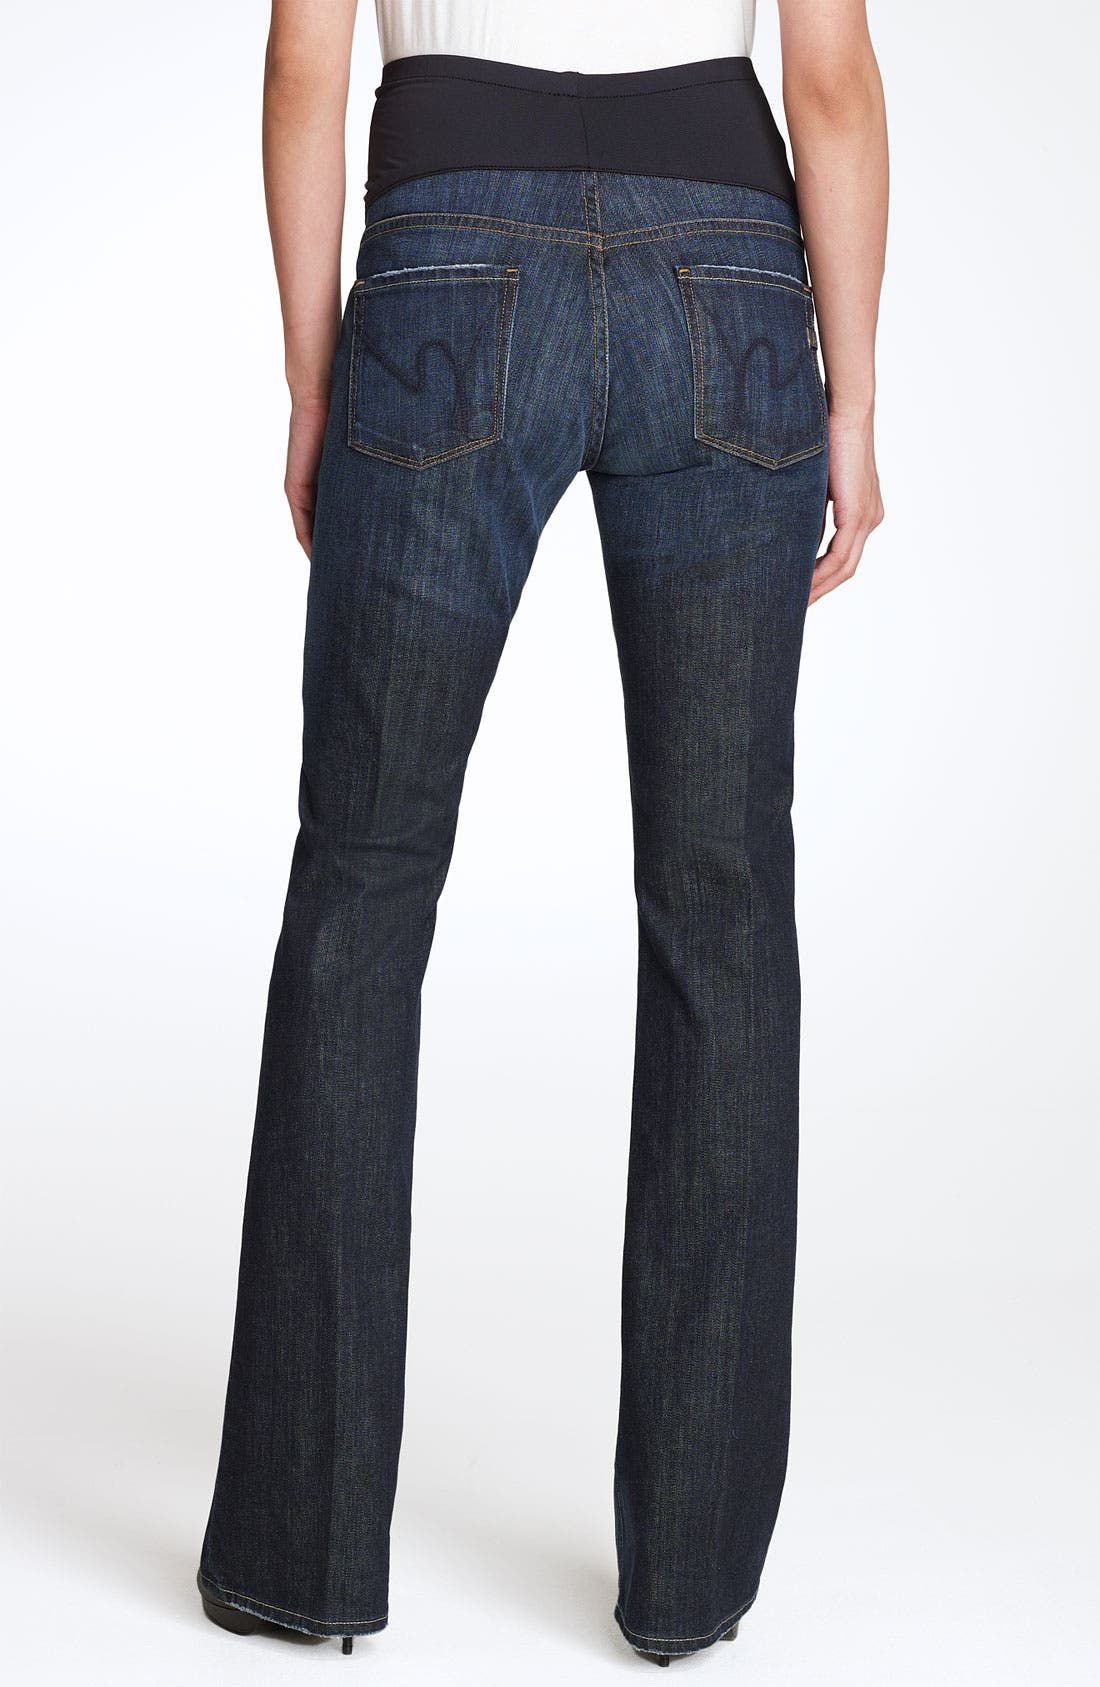 Alternate Image 2  - Citizens of Humanity 'Kelly' Maternity Bootcut Stretch Jeans (New Pacific Blue)